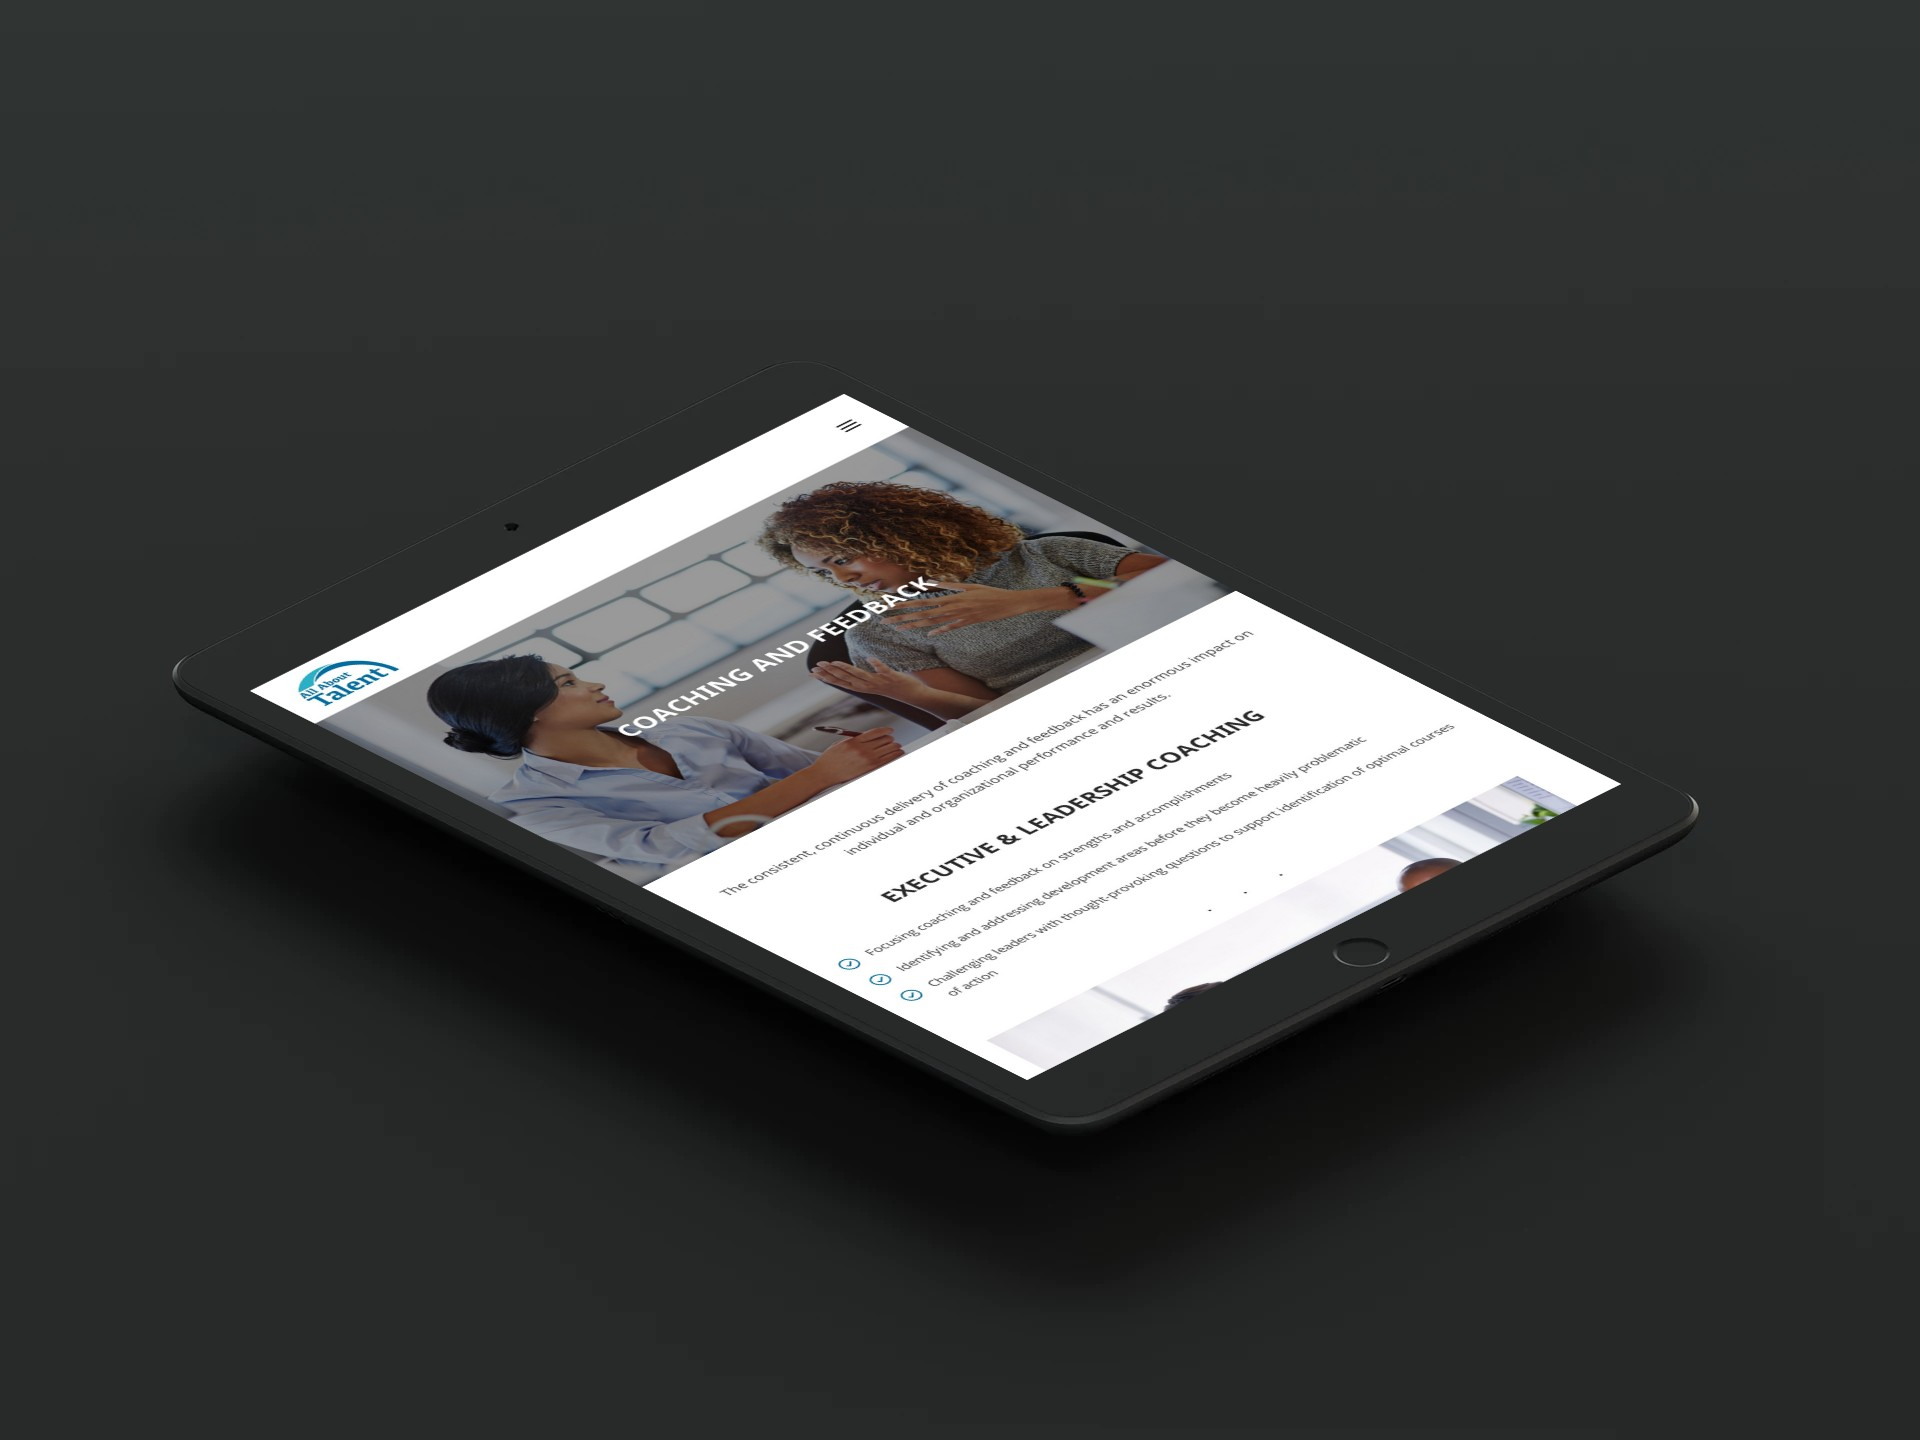 All About Talent Web Design Tablet